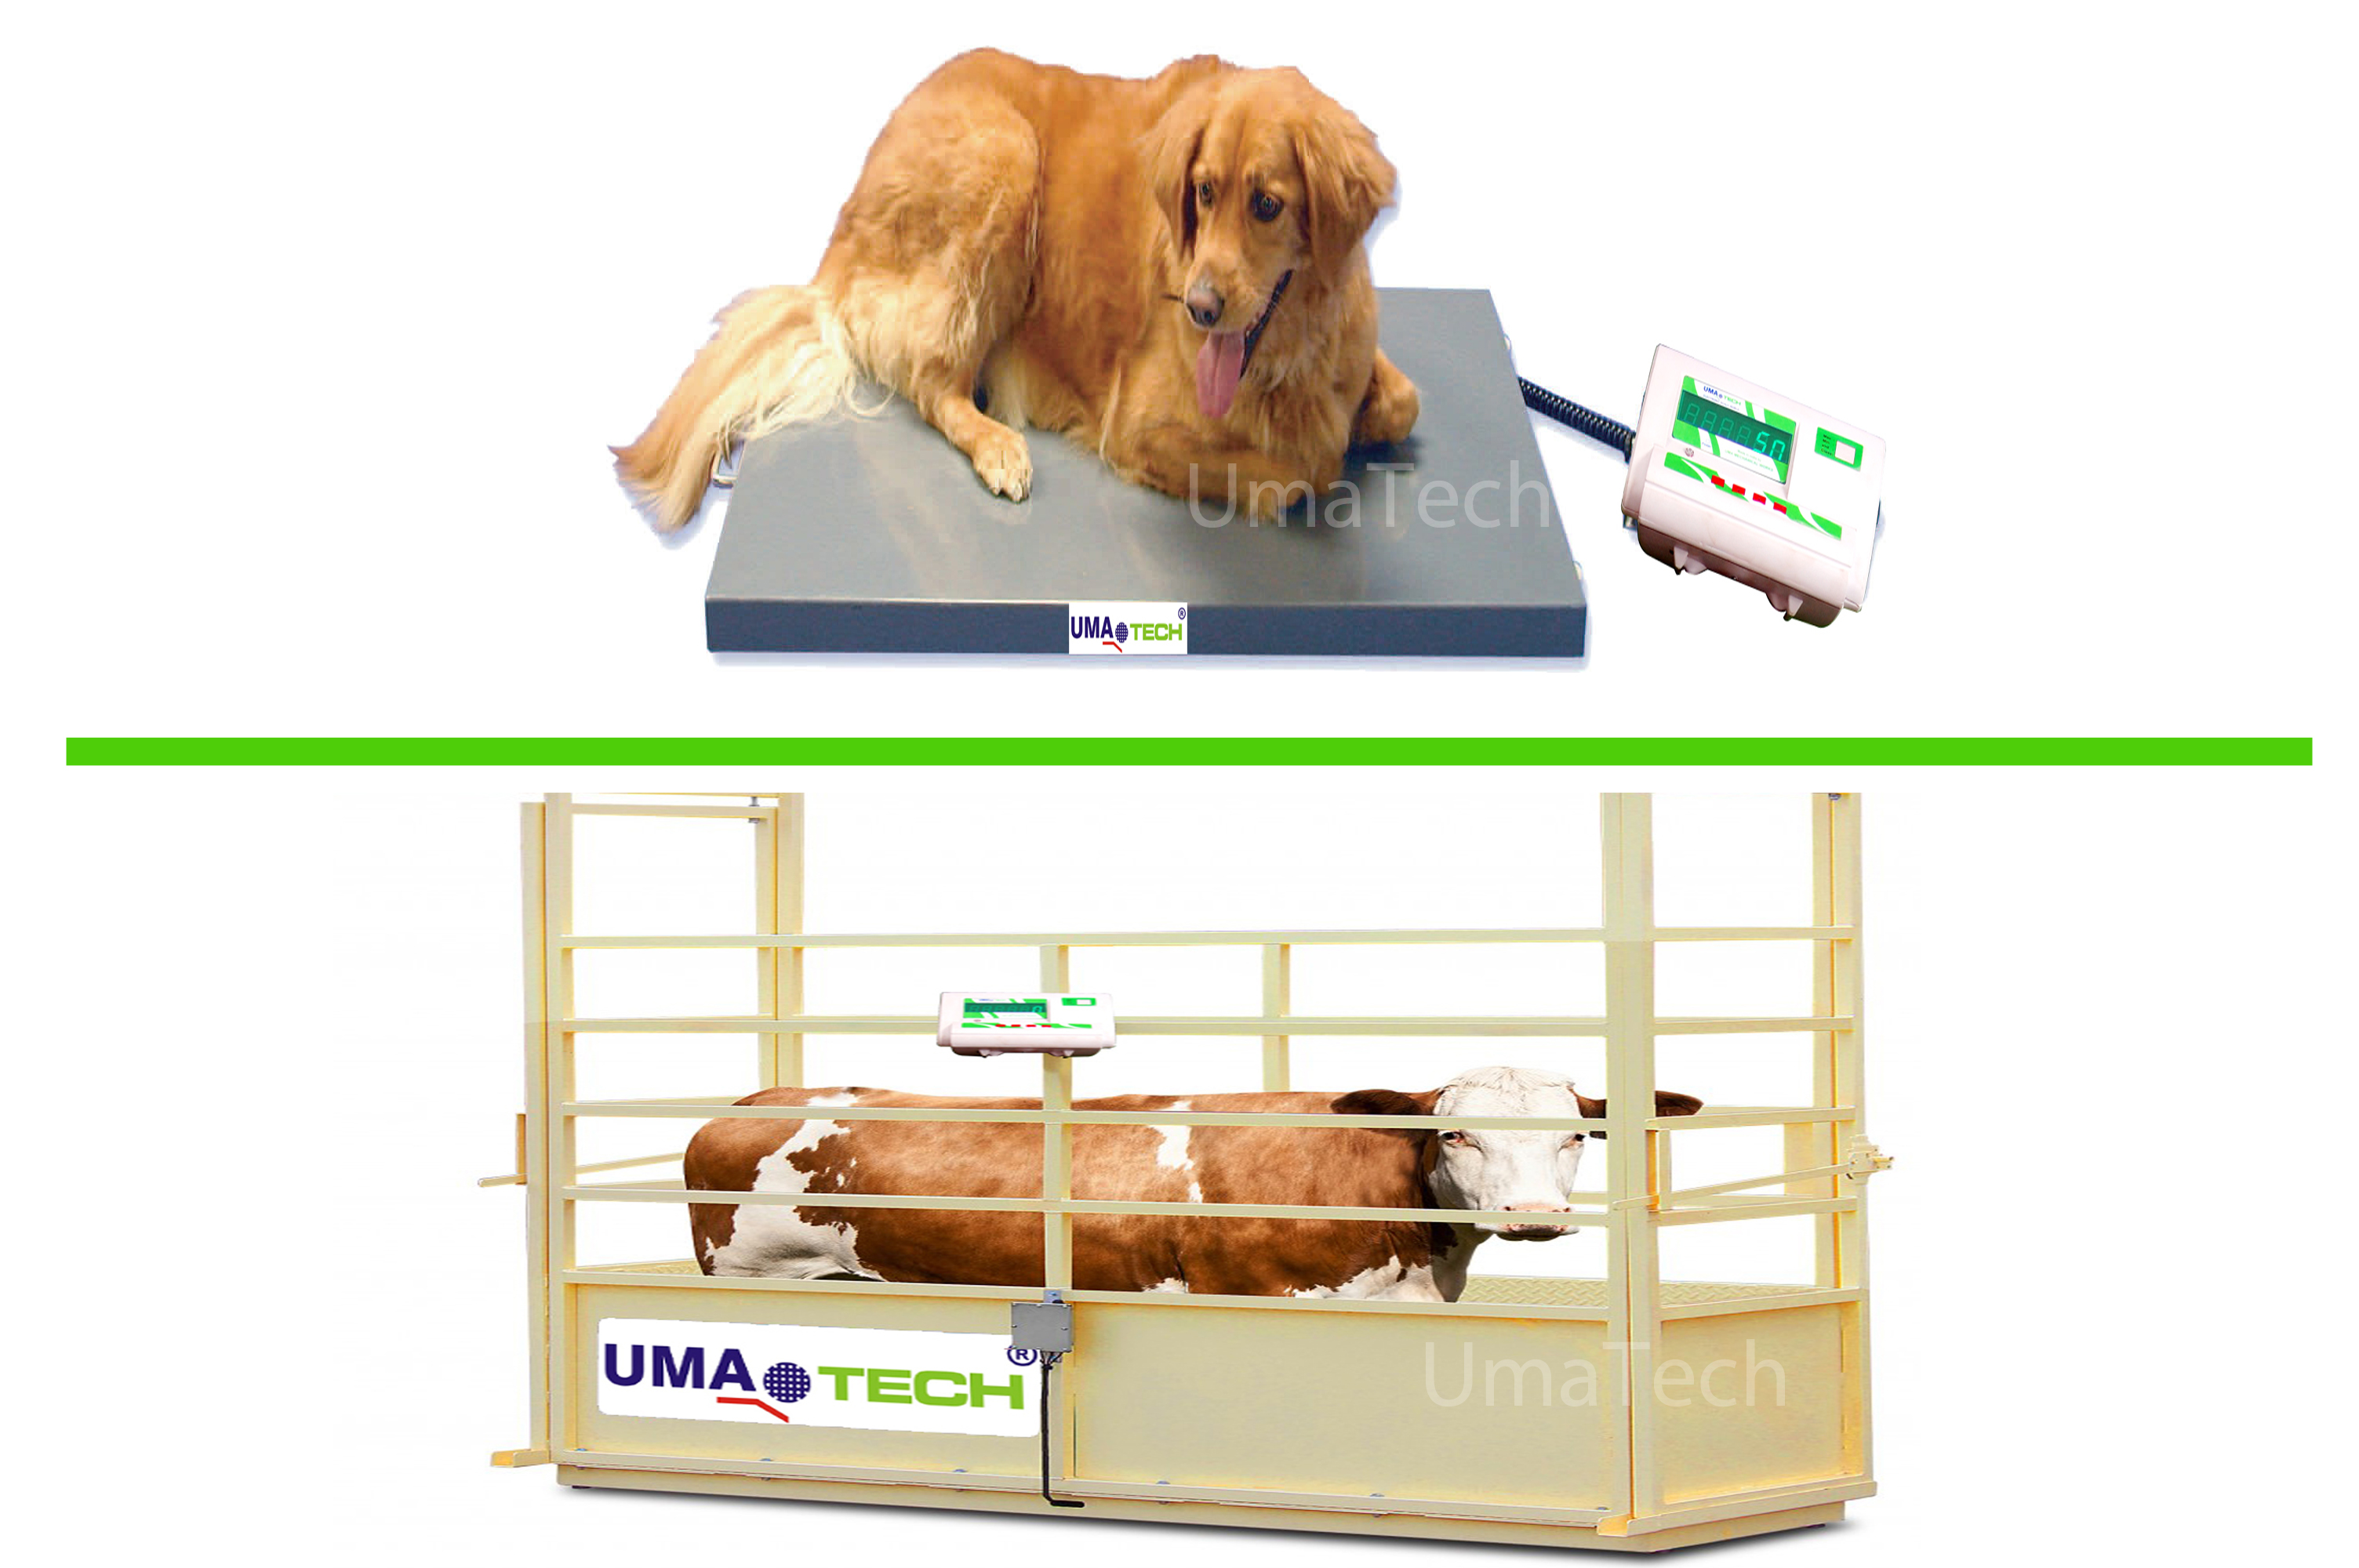 Veterinary & Animal Weighing Scales for Weighing Pets, Goats, Sheeps, Cows & Horses etc.,